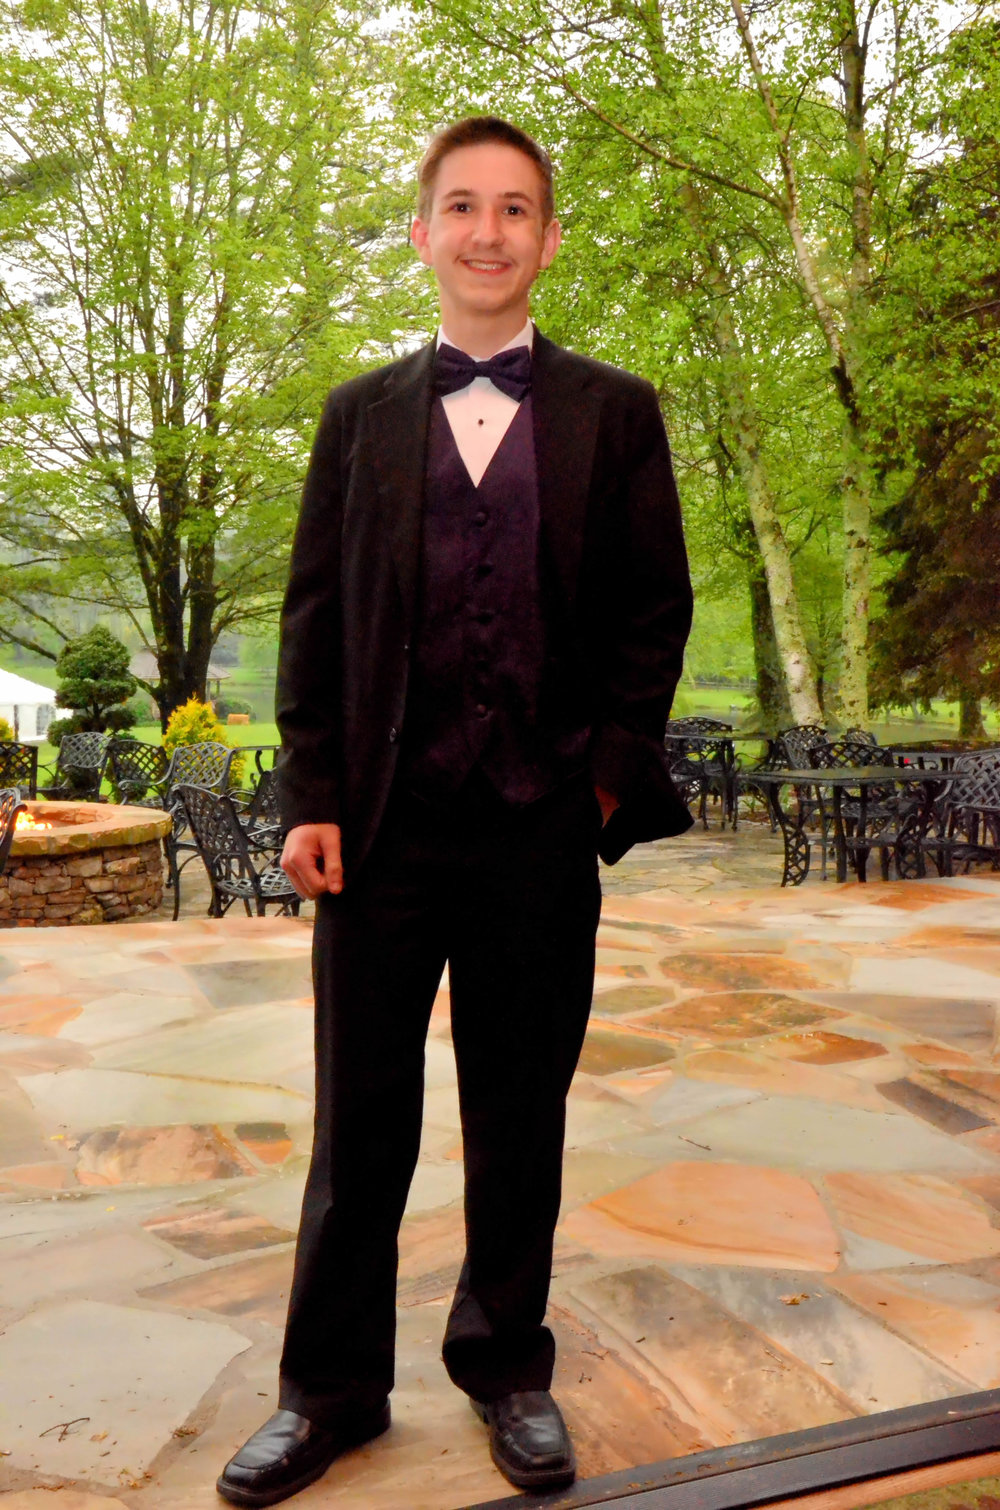 2013-05-18_teenformal_12.jpg